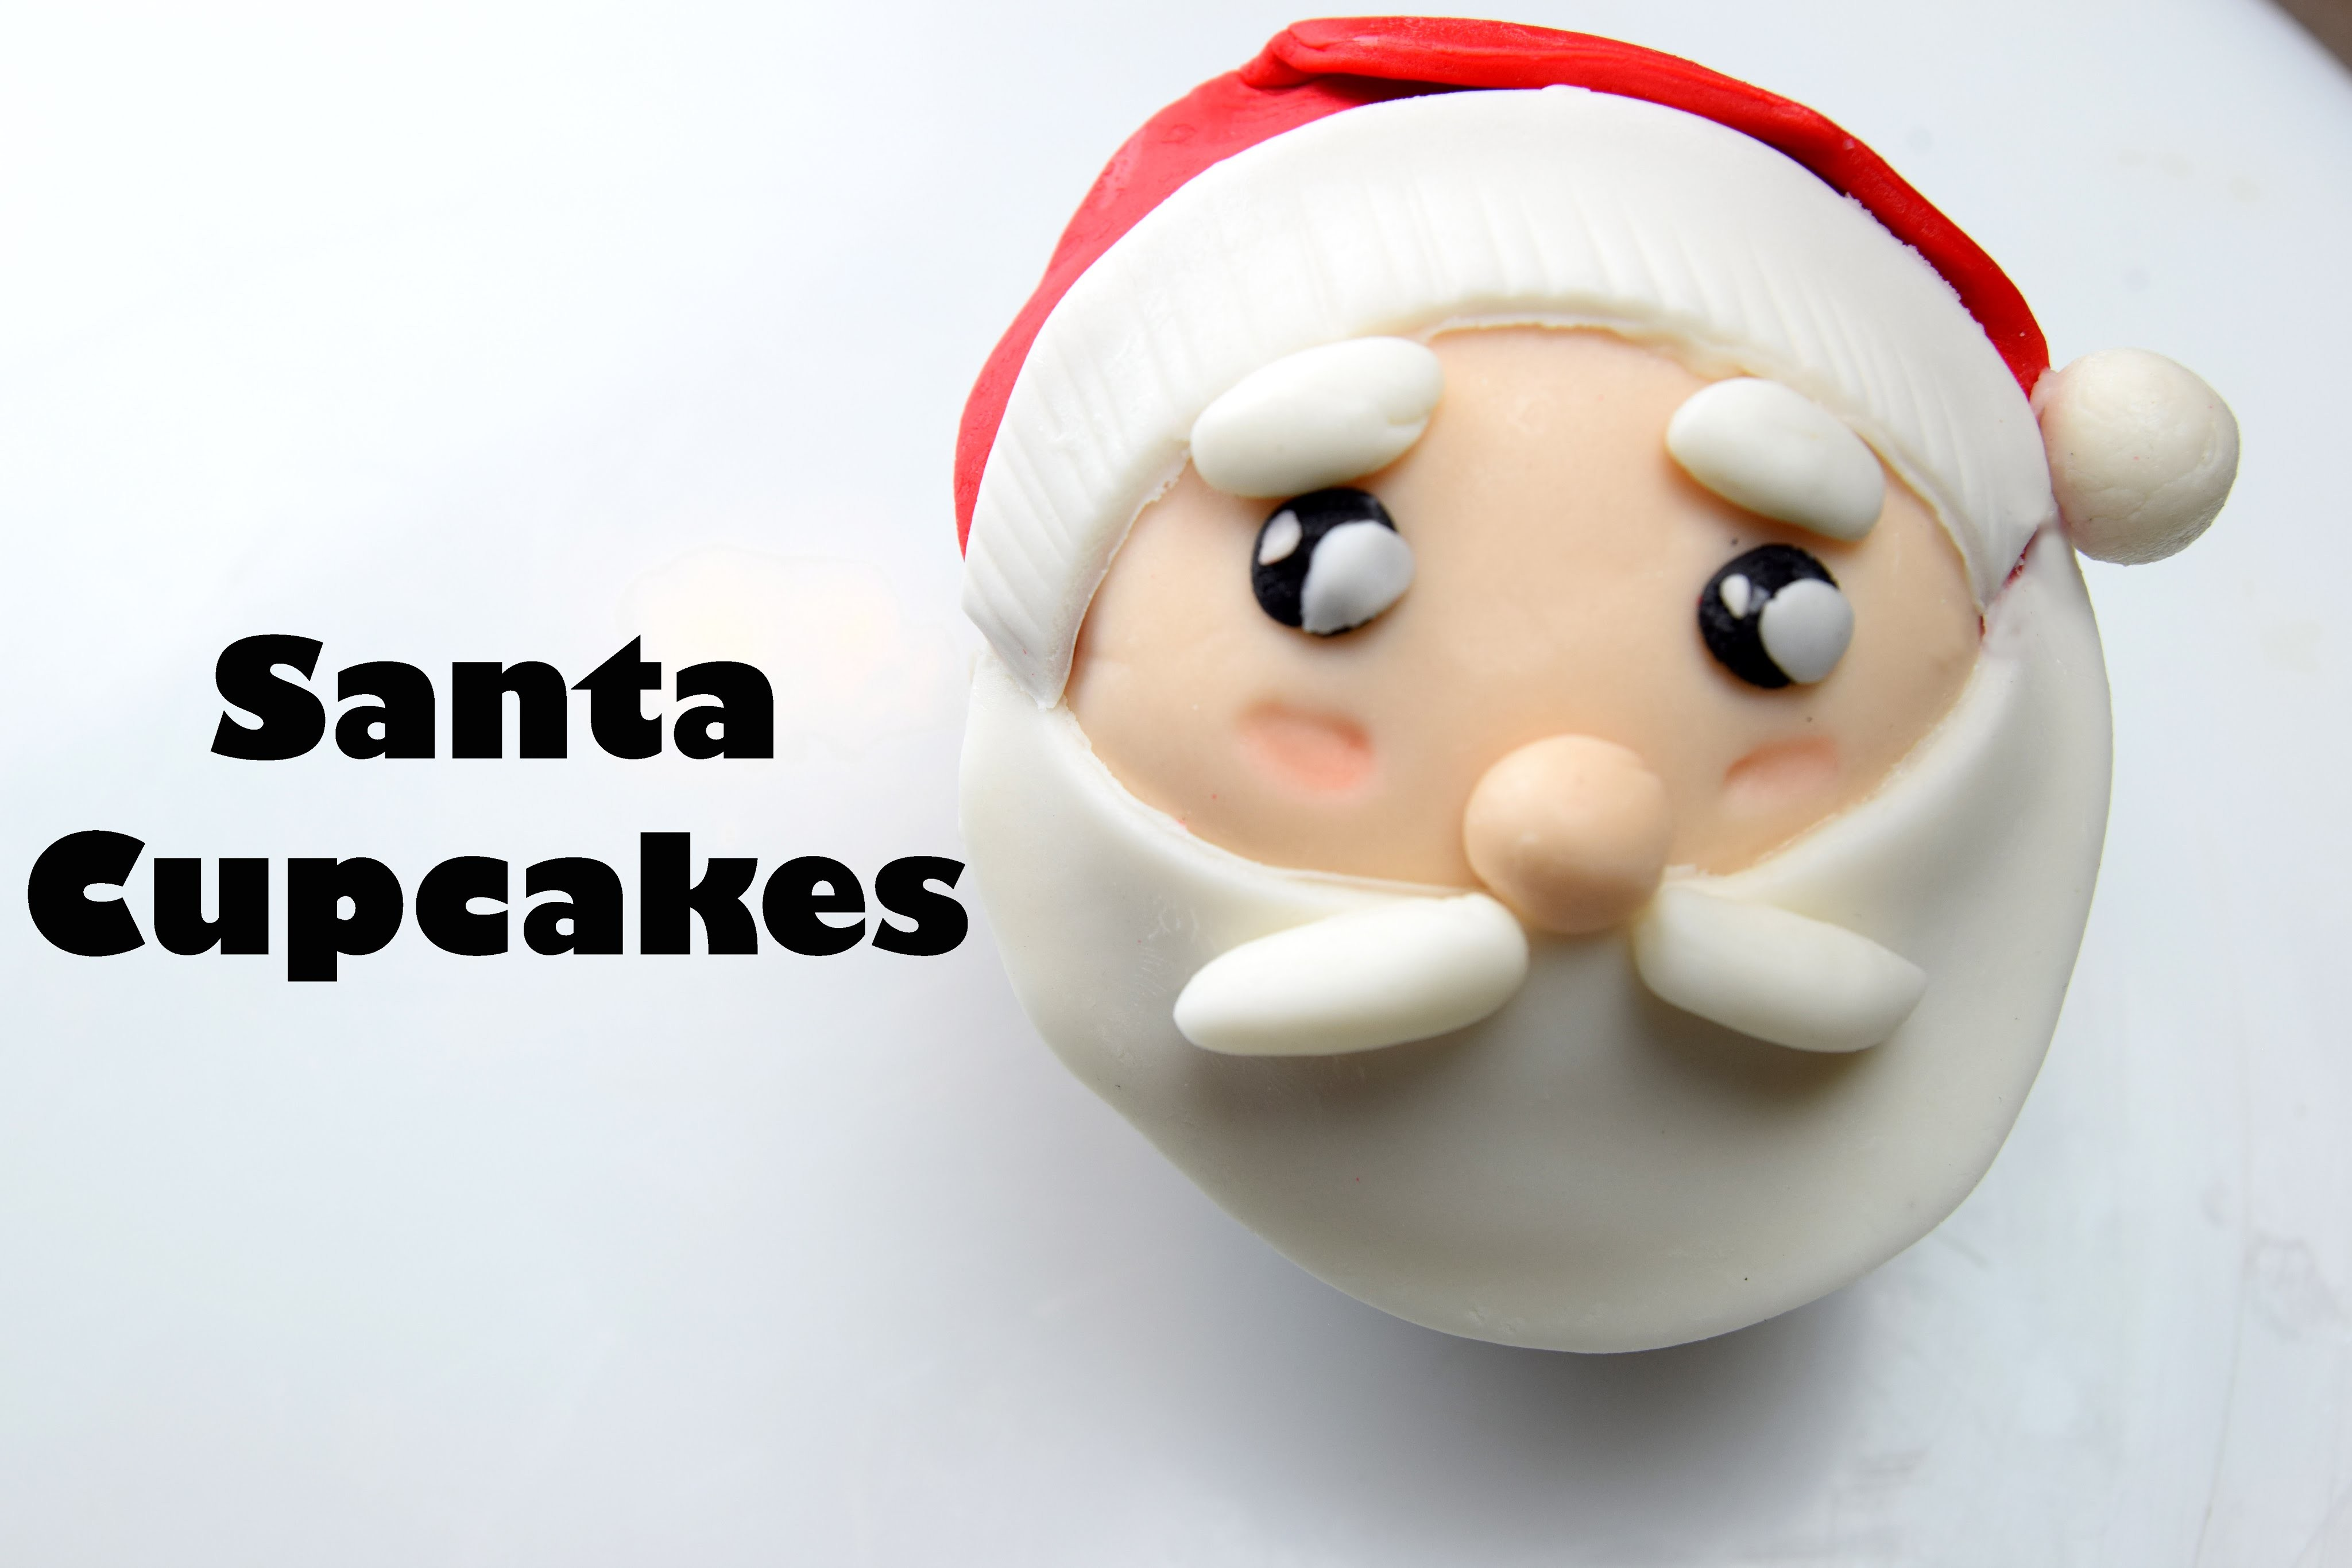 How To Make A Santa Cupcake | Updated Version | Cake Decorating For Beginners